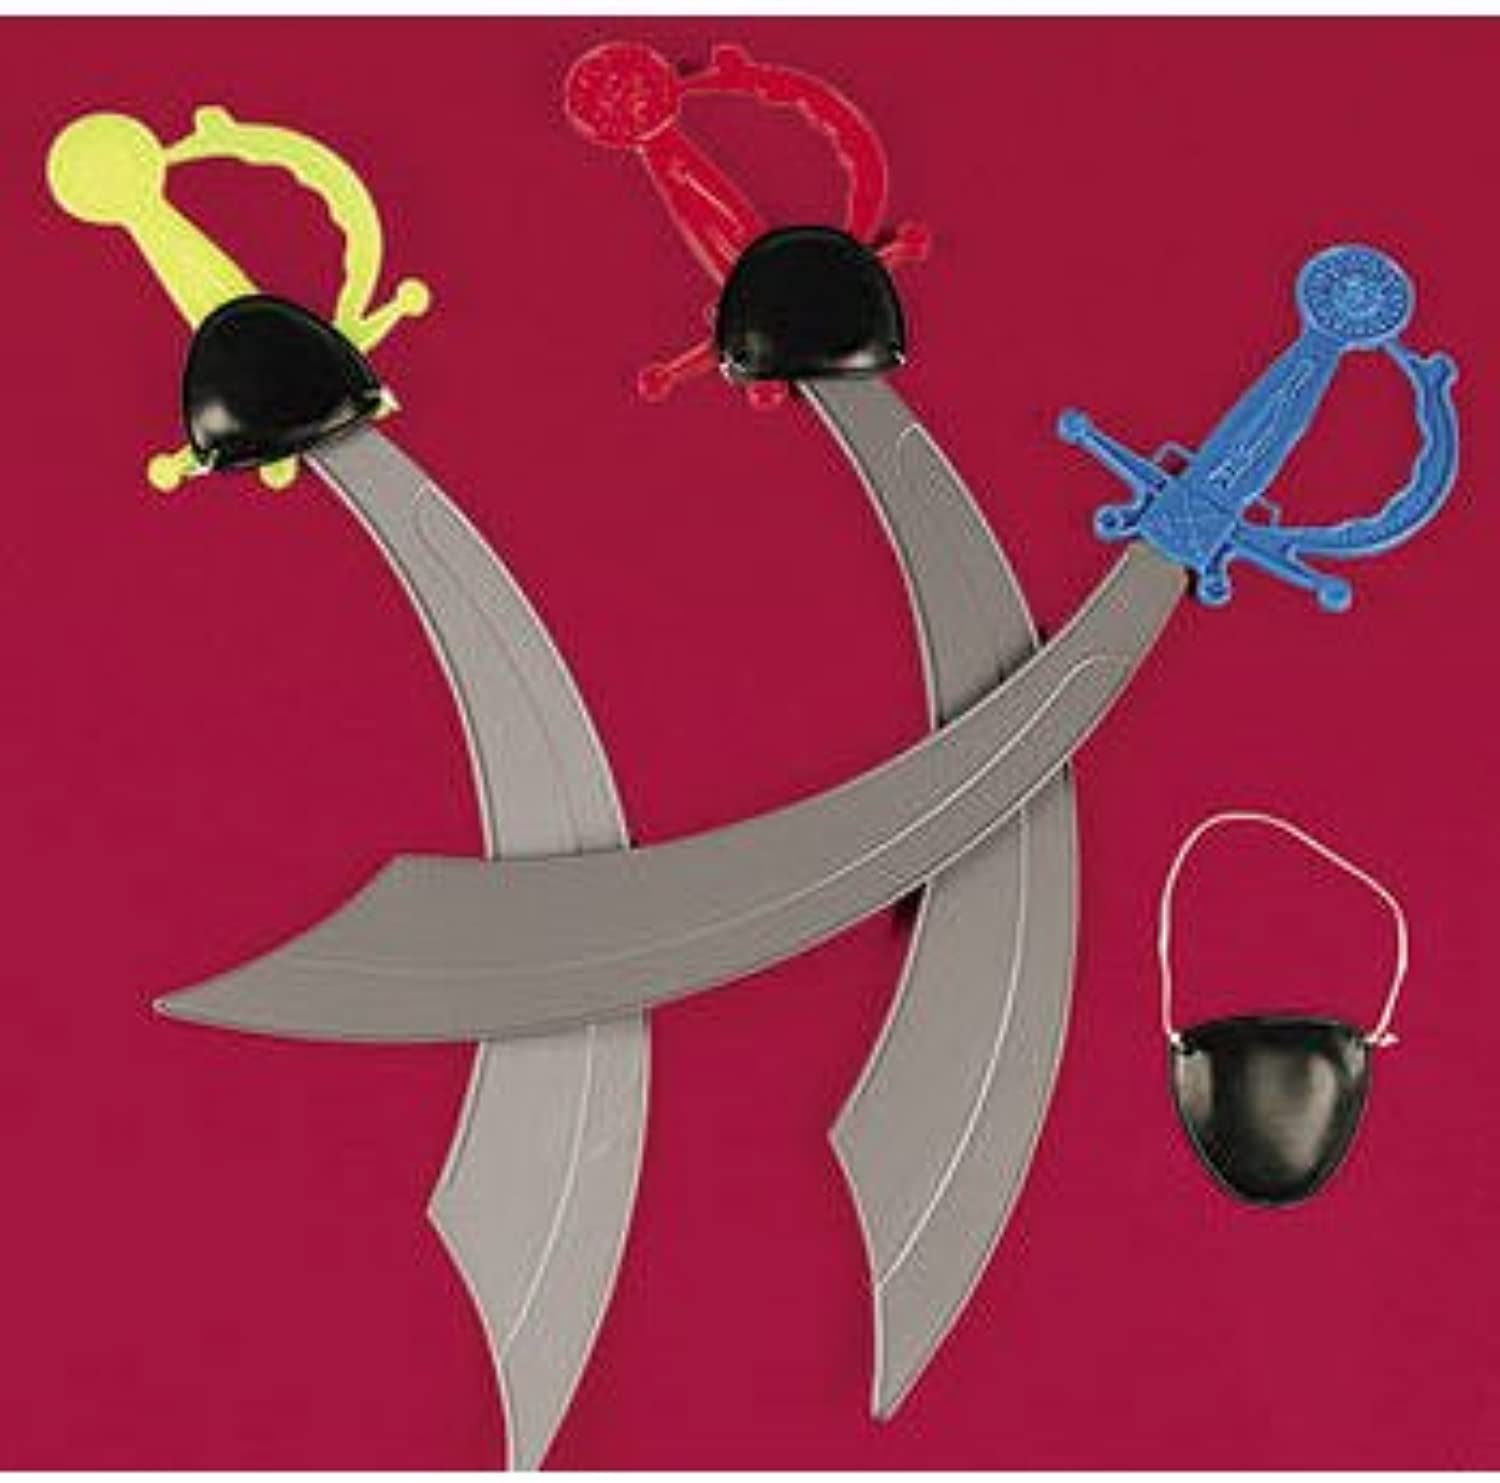 PIRATE SWORD WITH EYE PATCH (1 DOZEN) - BULK by Fun Express